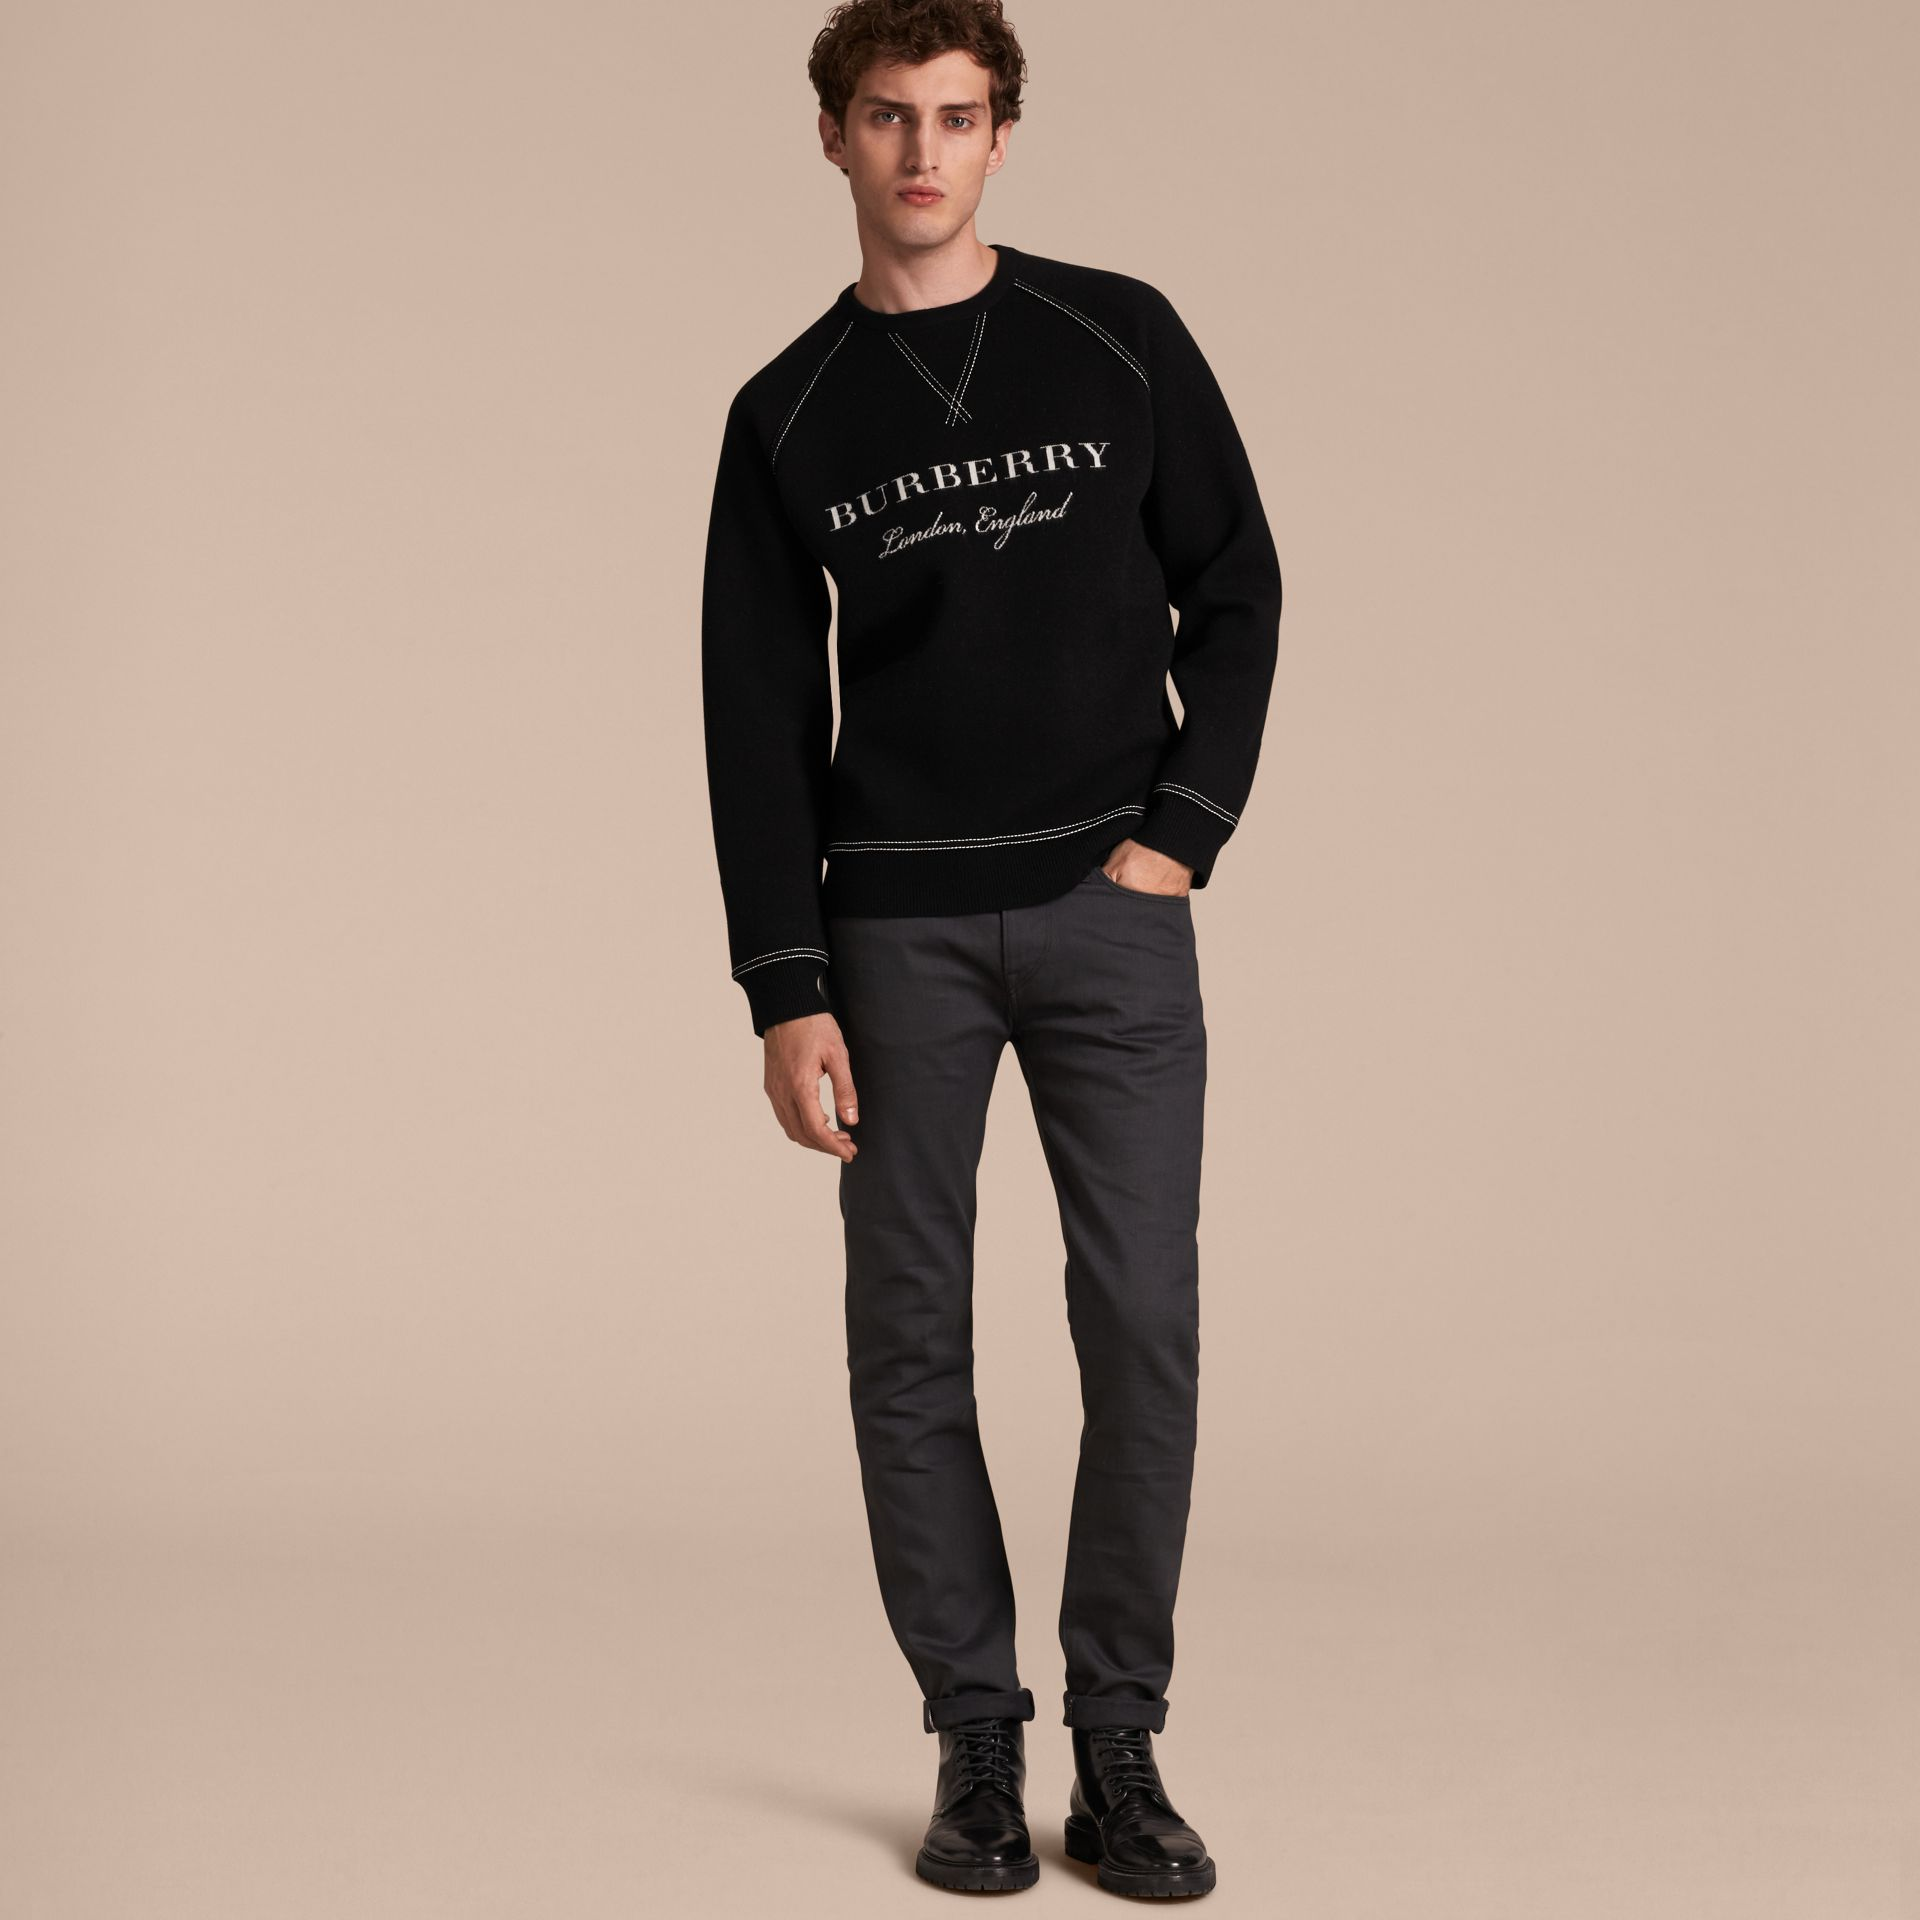 Topstitch Detail Wool Cashmere Blend Sweatshirt in Black - Men | Burberry - gallery image 6